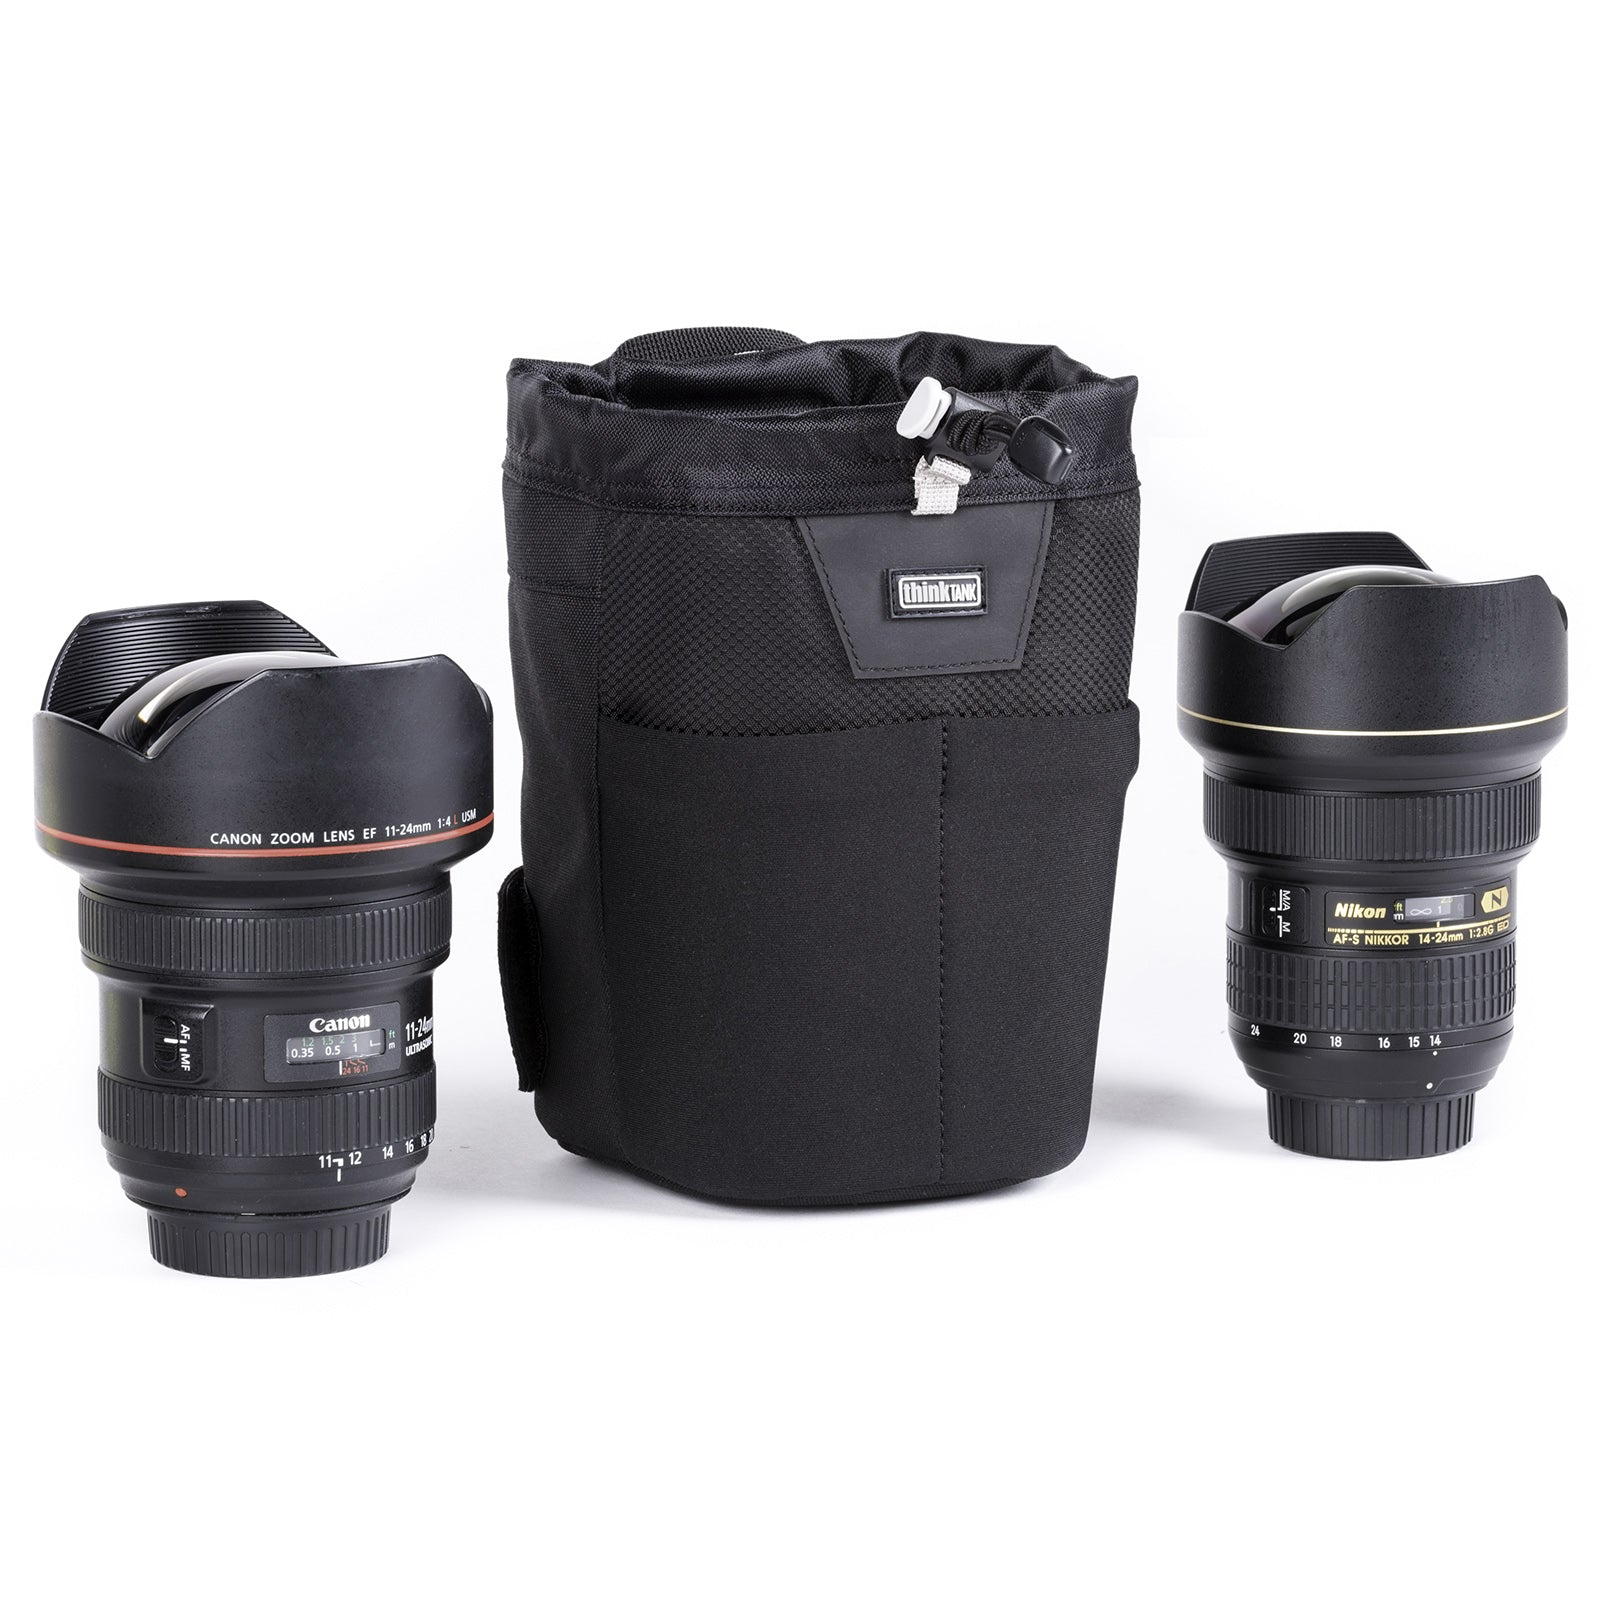 Fits wide-angle lenses with hoods in shooting position. Like 16–35mm f/2.8 or 11–24mm f/4 or 24mm f/1.4 or 14–24mm f/2.8 each with the lens hood in the shooting position